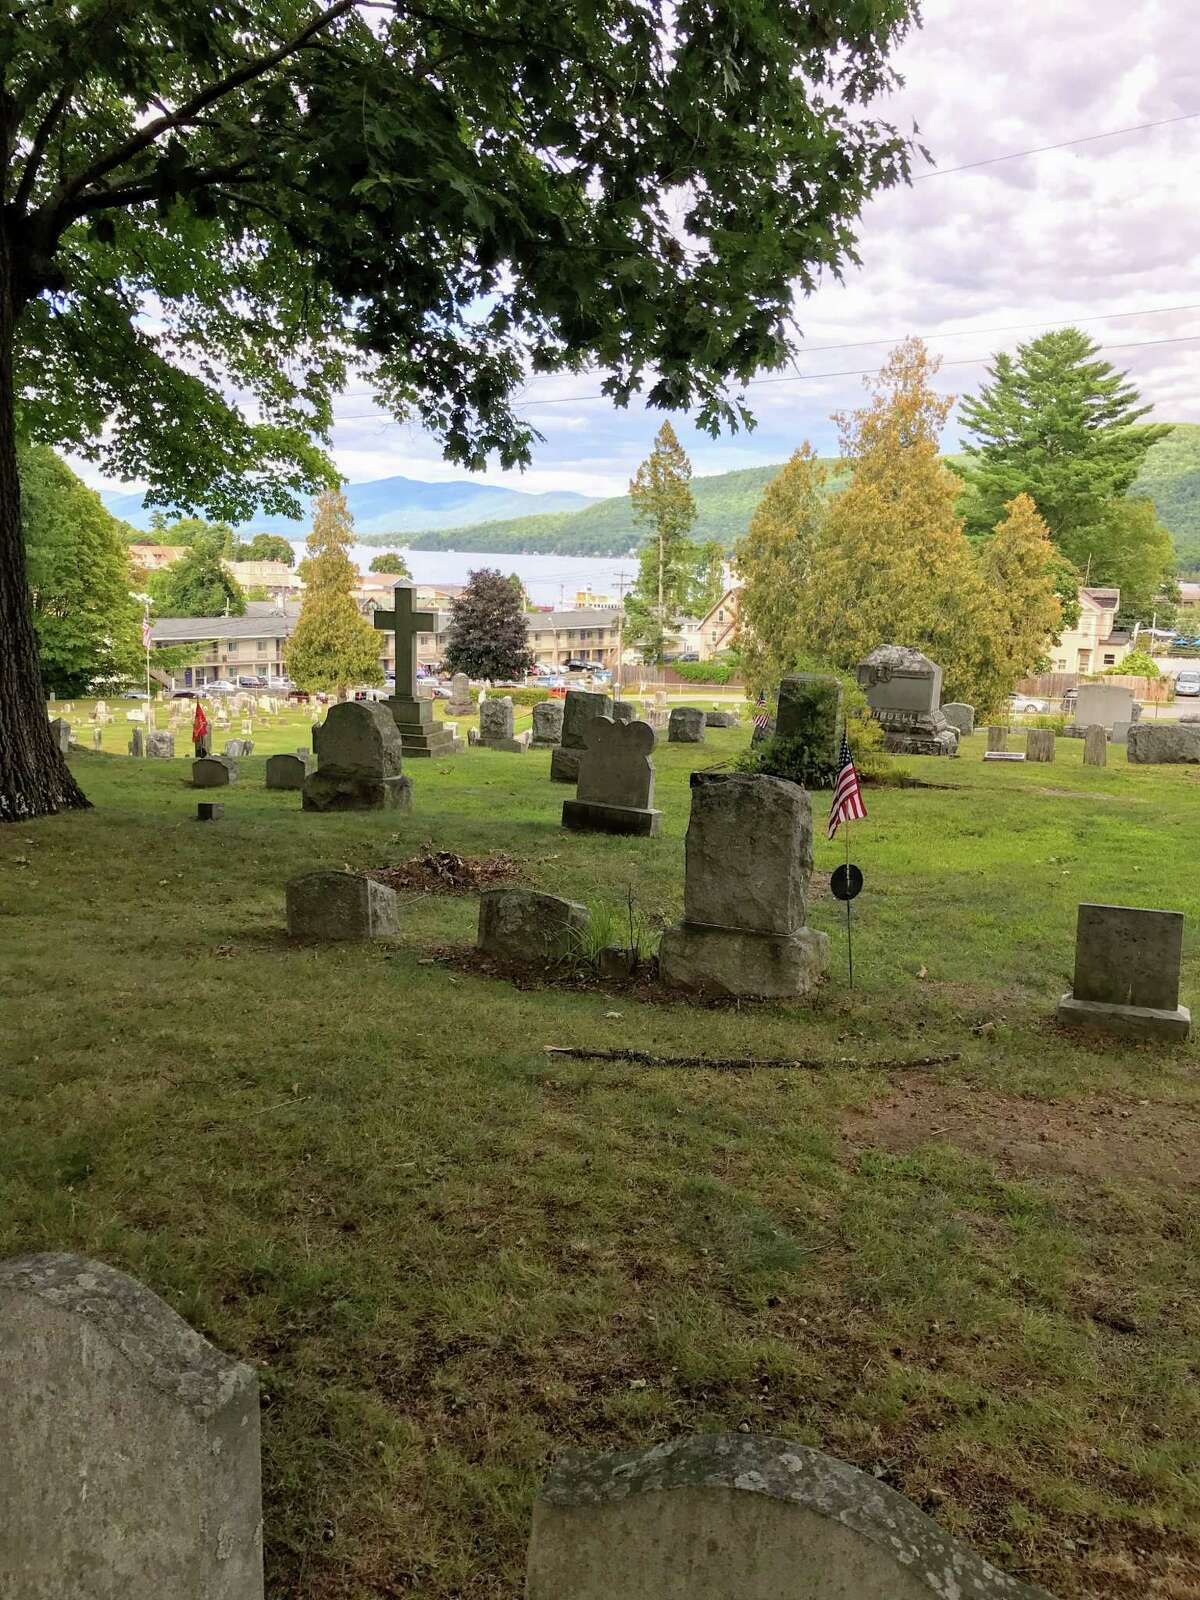 The church cemetery of Sacred Heart Church in Lake George is in the foreground of Mike Novack's Aug. 31 photograph. Lake George itself is in the background.